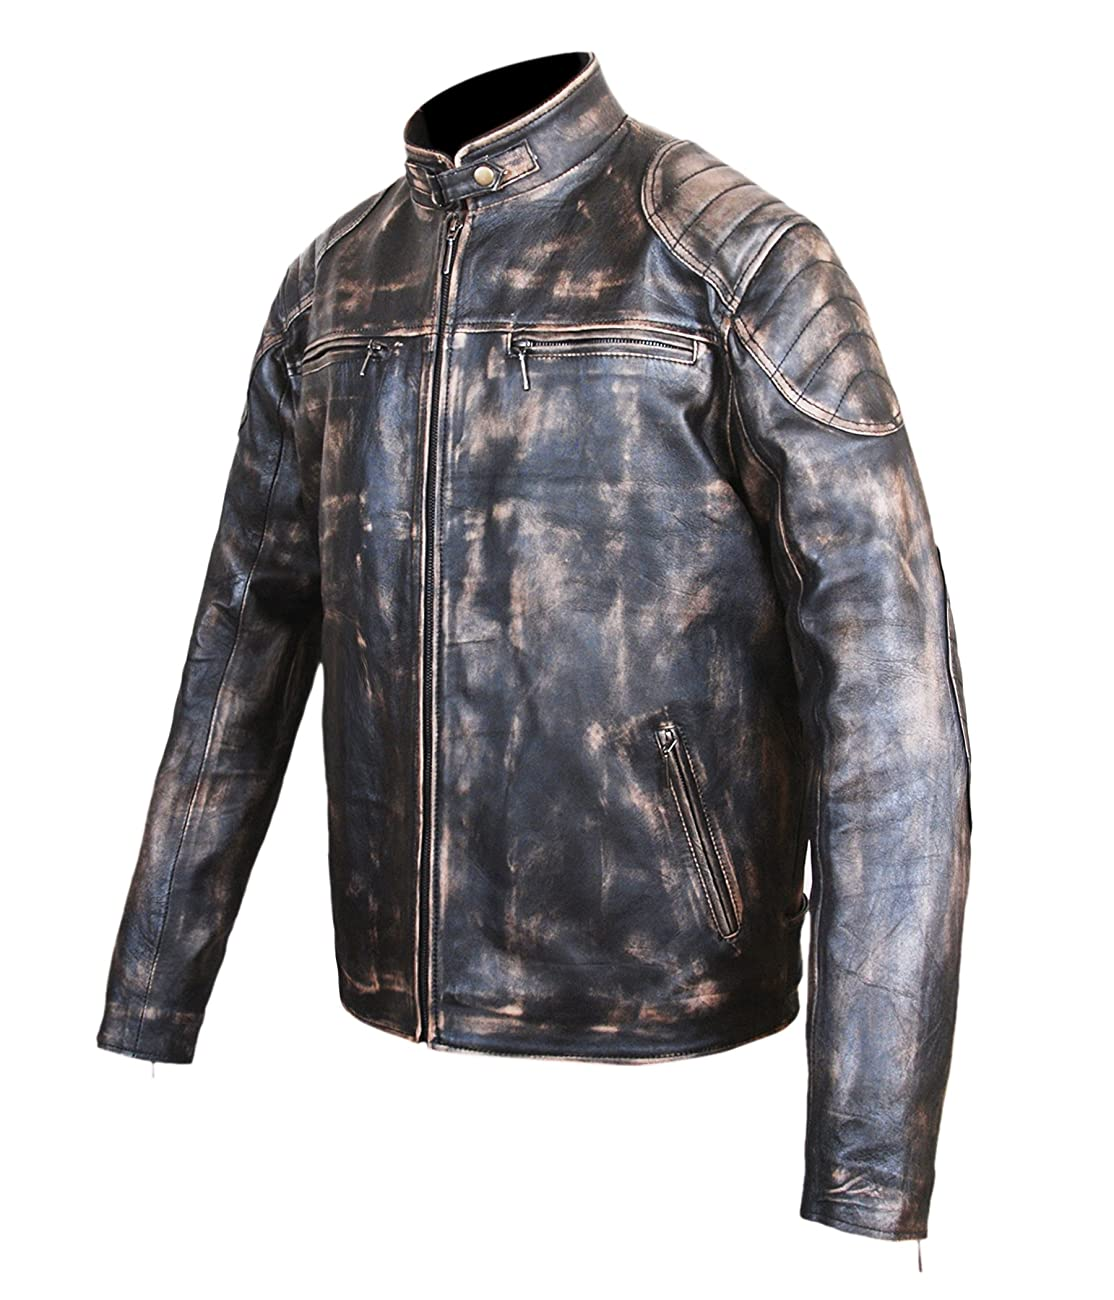 Antique Black Men's Vintage Distressed Retro Motorcycle Biker Leather jacket - TOP SELLER 1